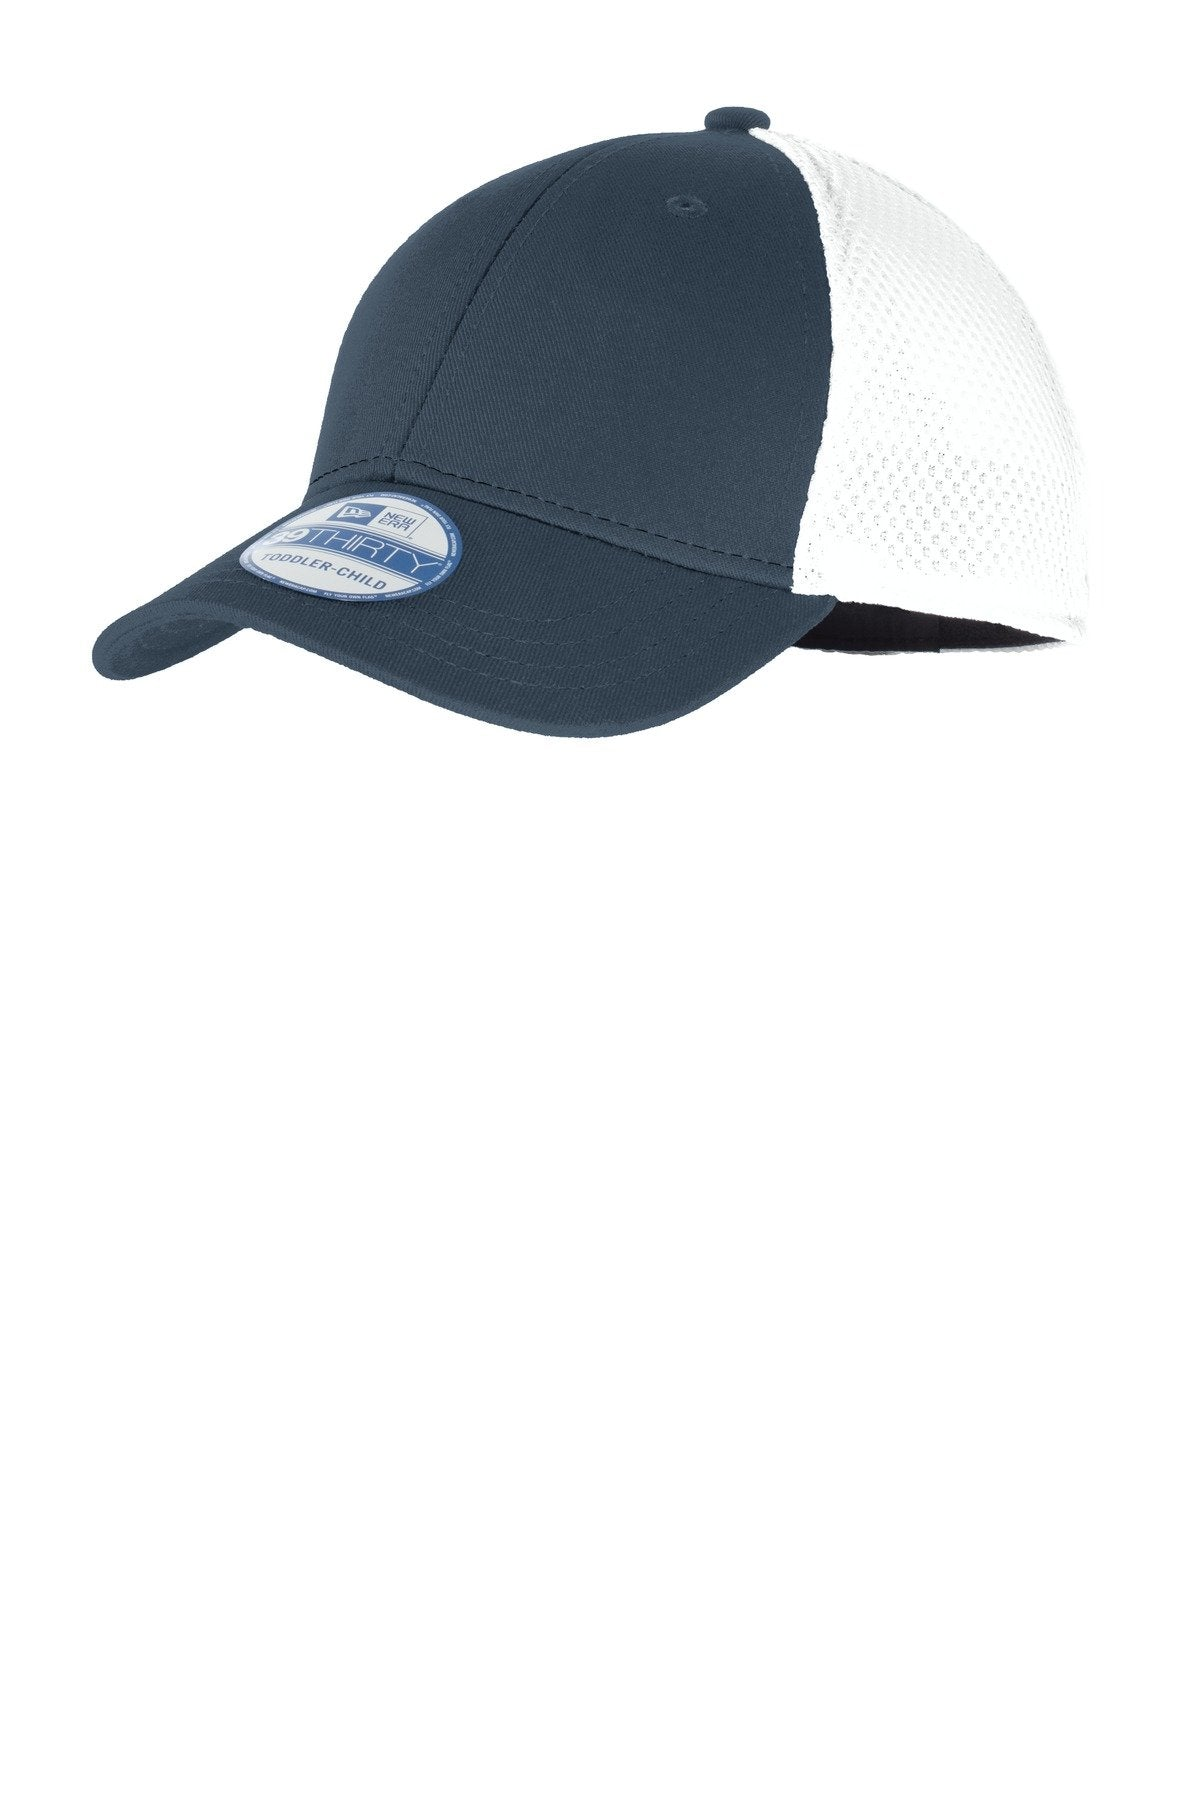 Deep Navy/White - New Era NE302